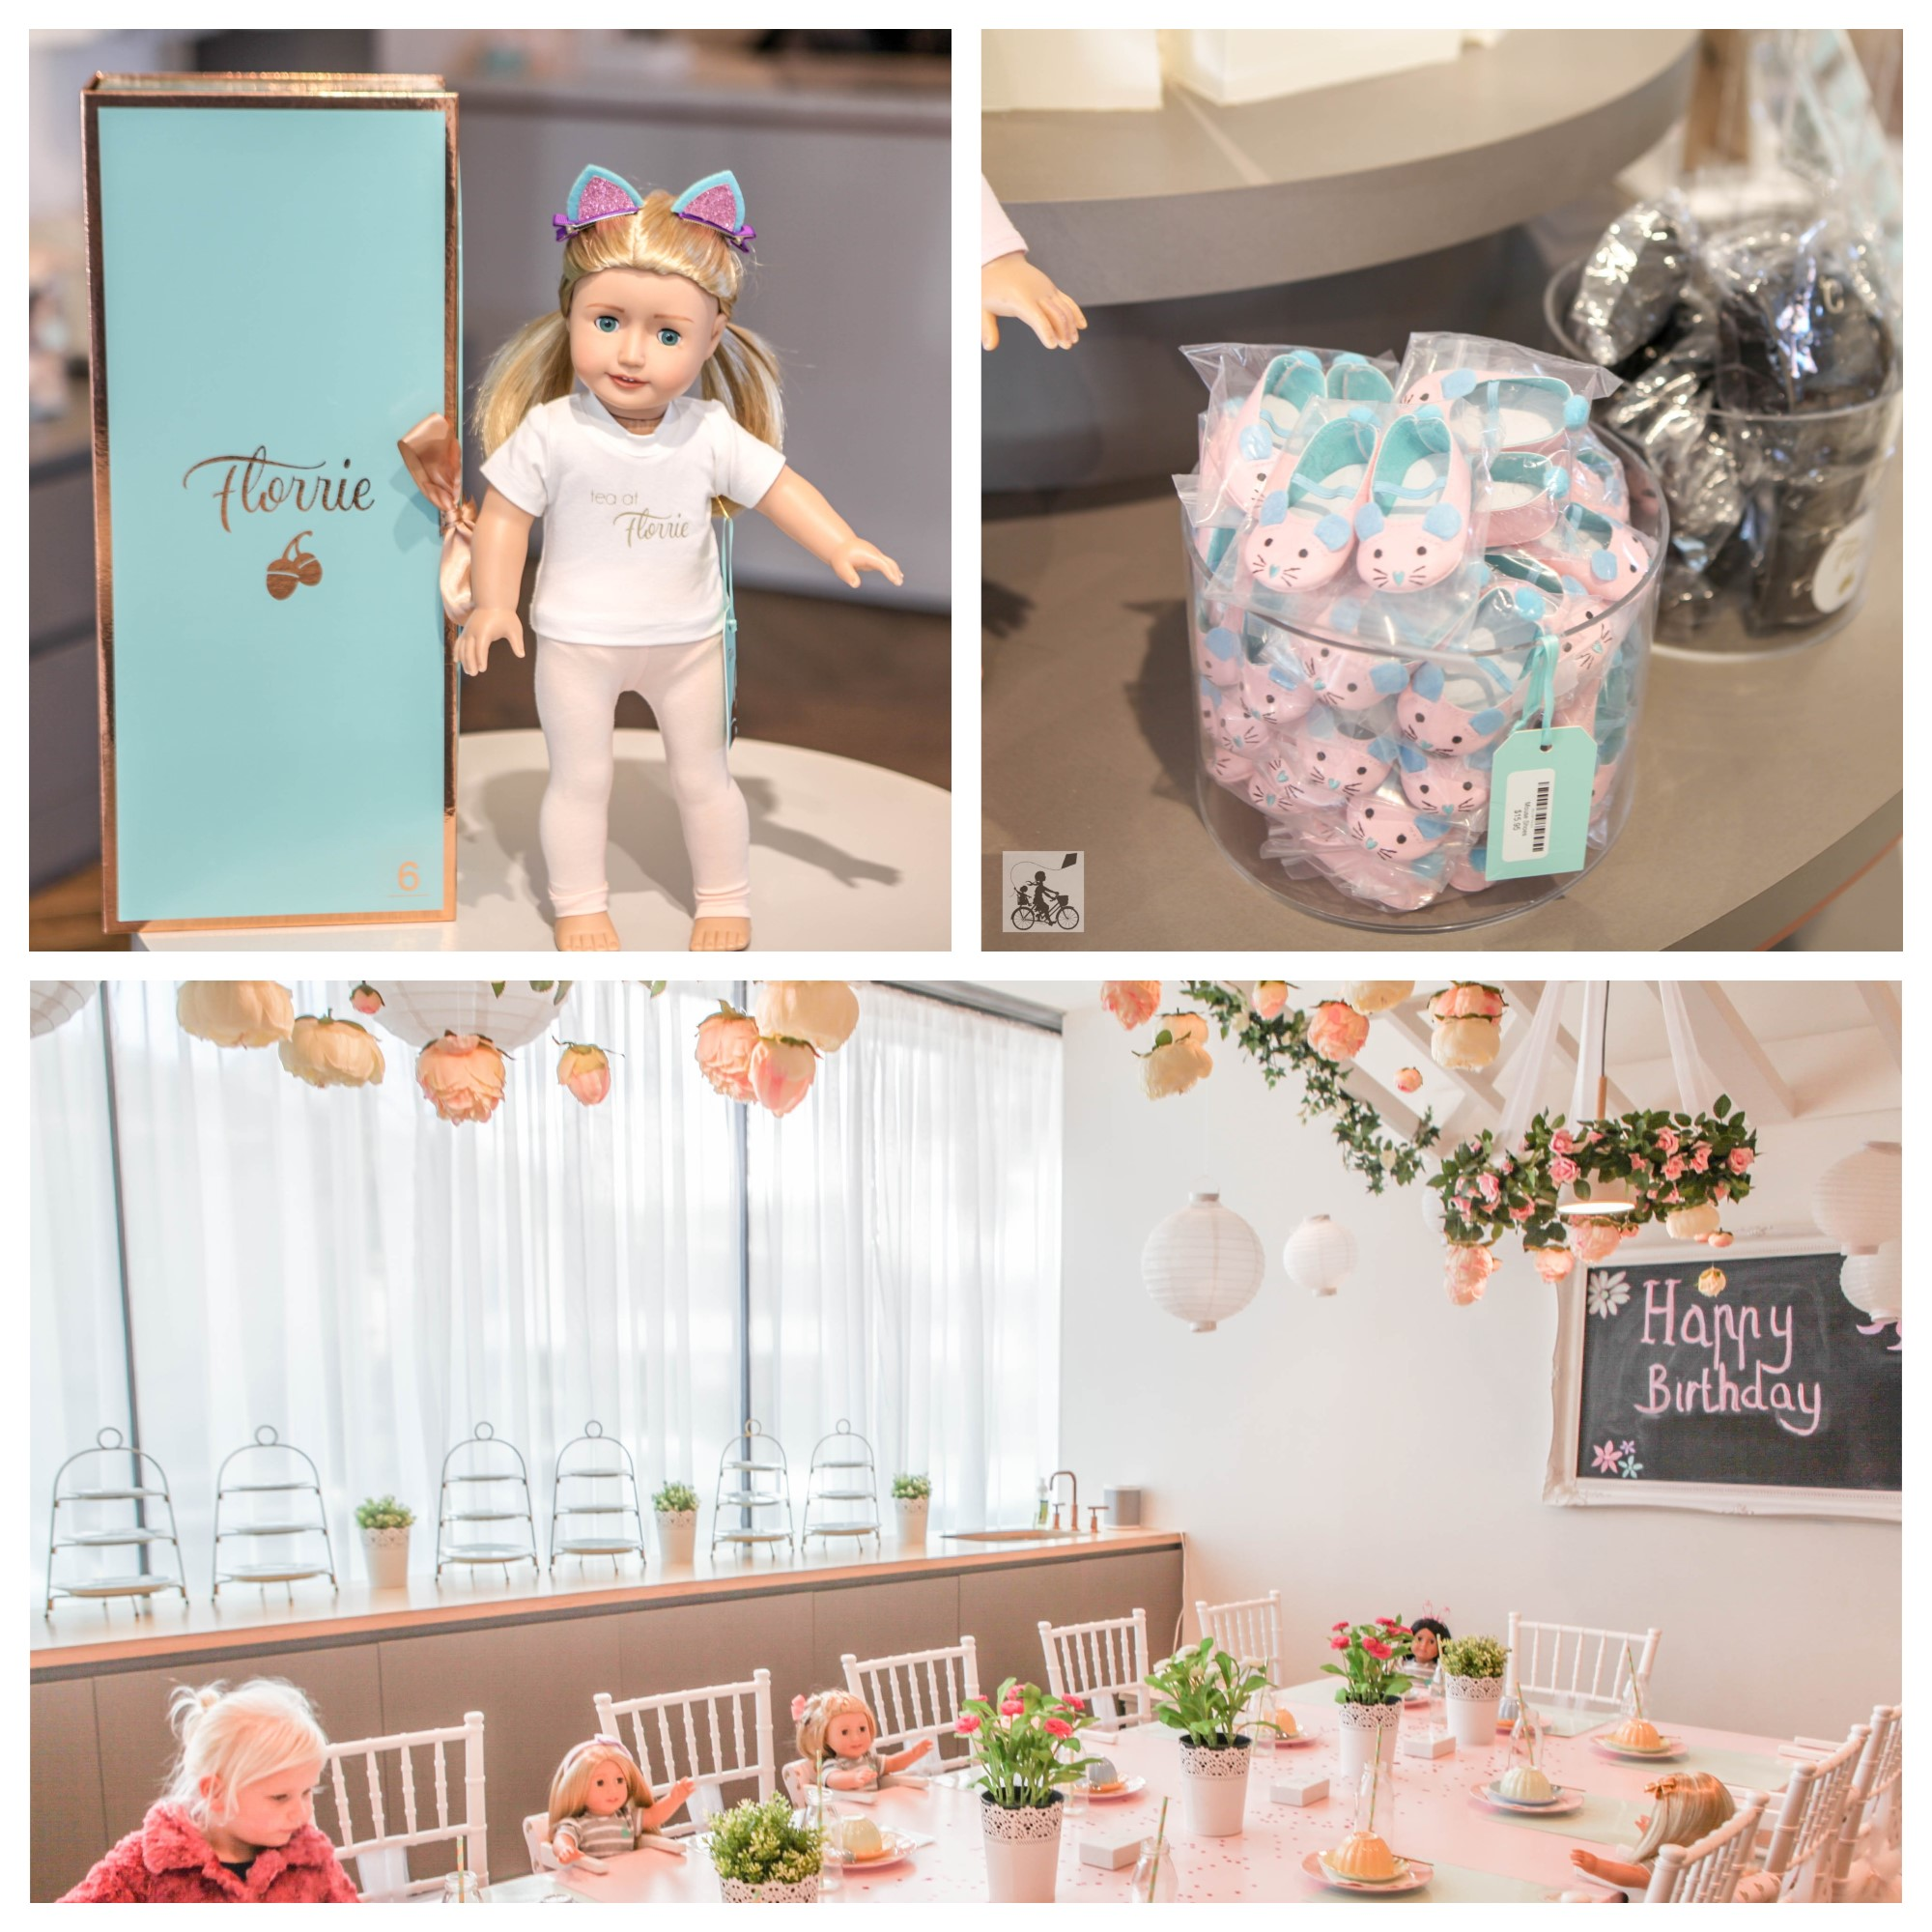 florrie dolls and cafe, armadale - mamma knows south